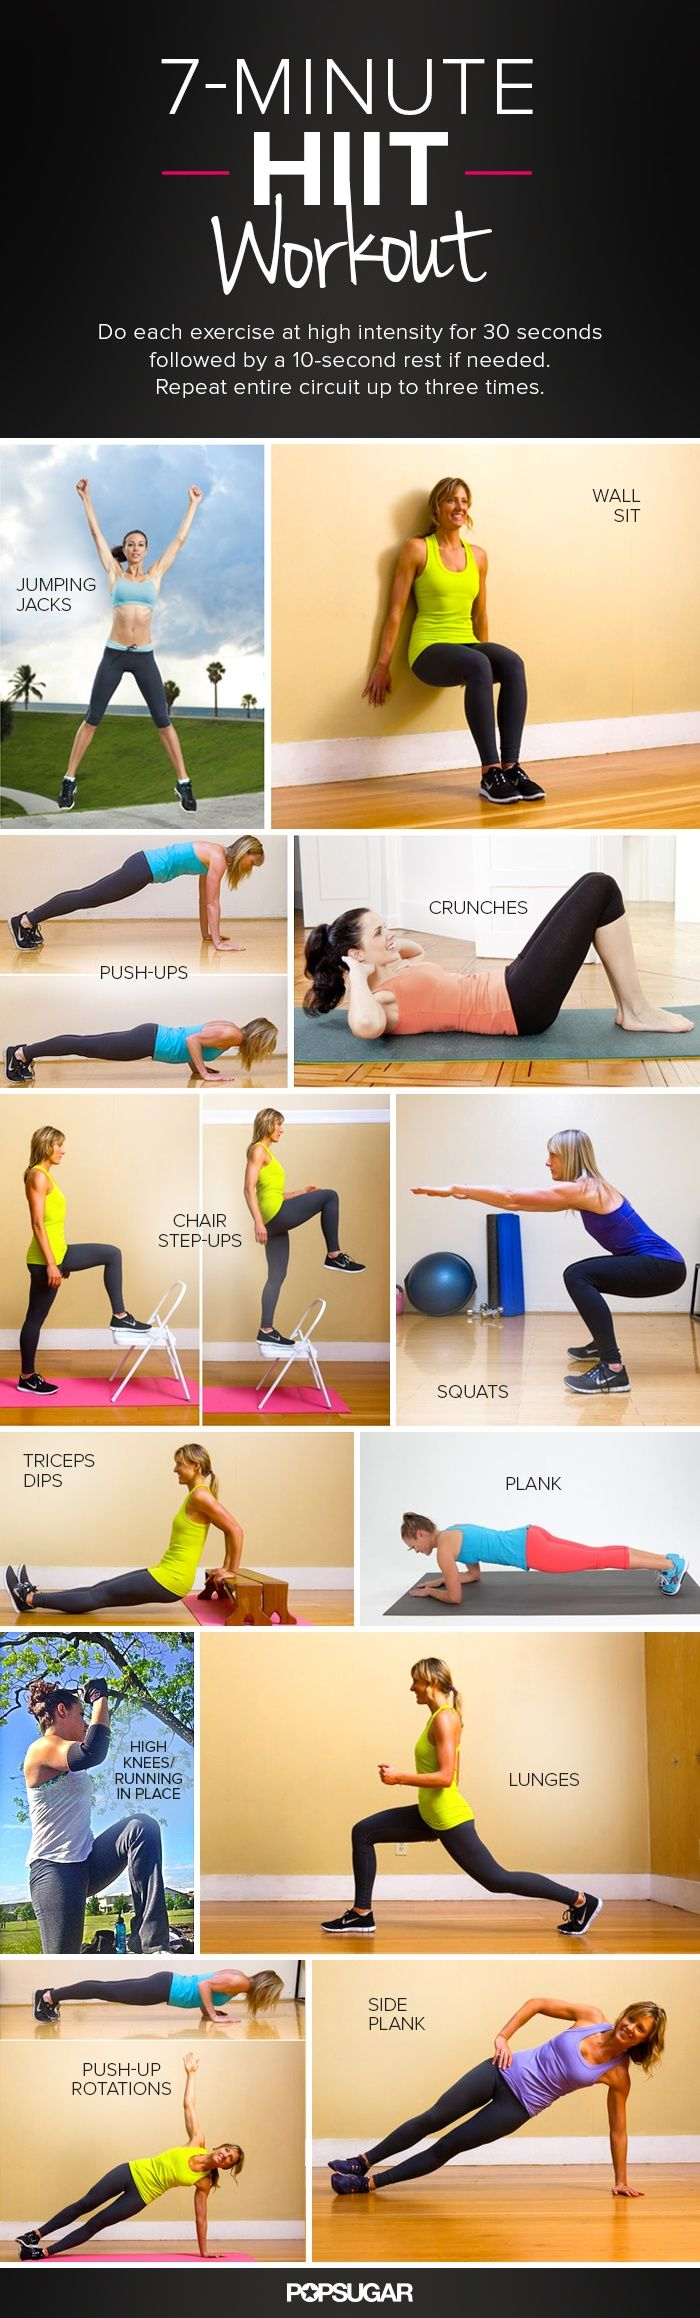 A short and sweet workout you can do anytime :)